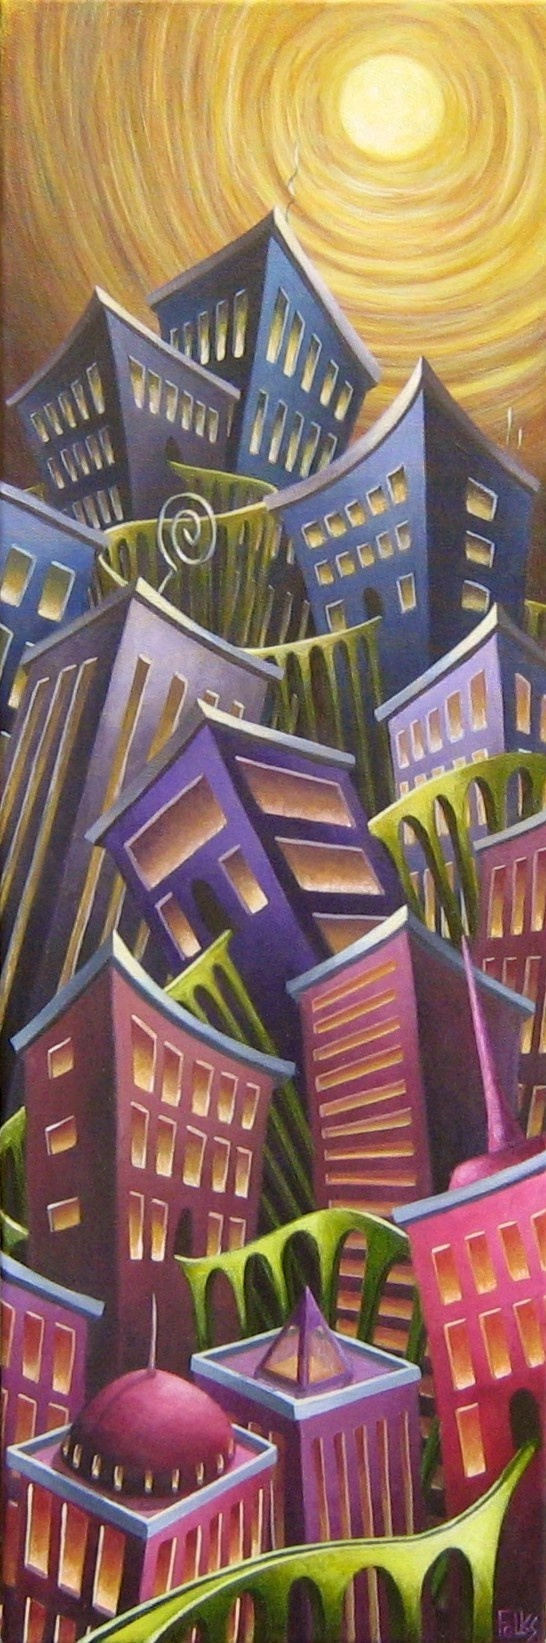 "Urban Tranquility 12x36"" Acrylic on canvas"